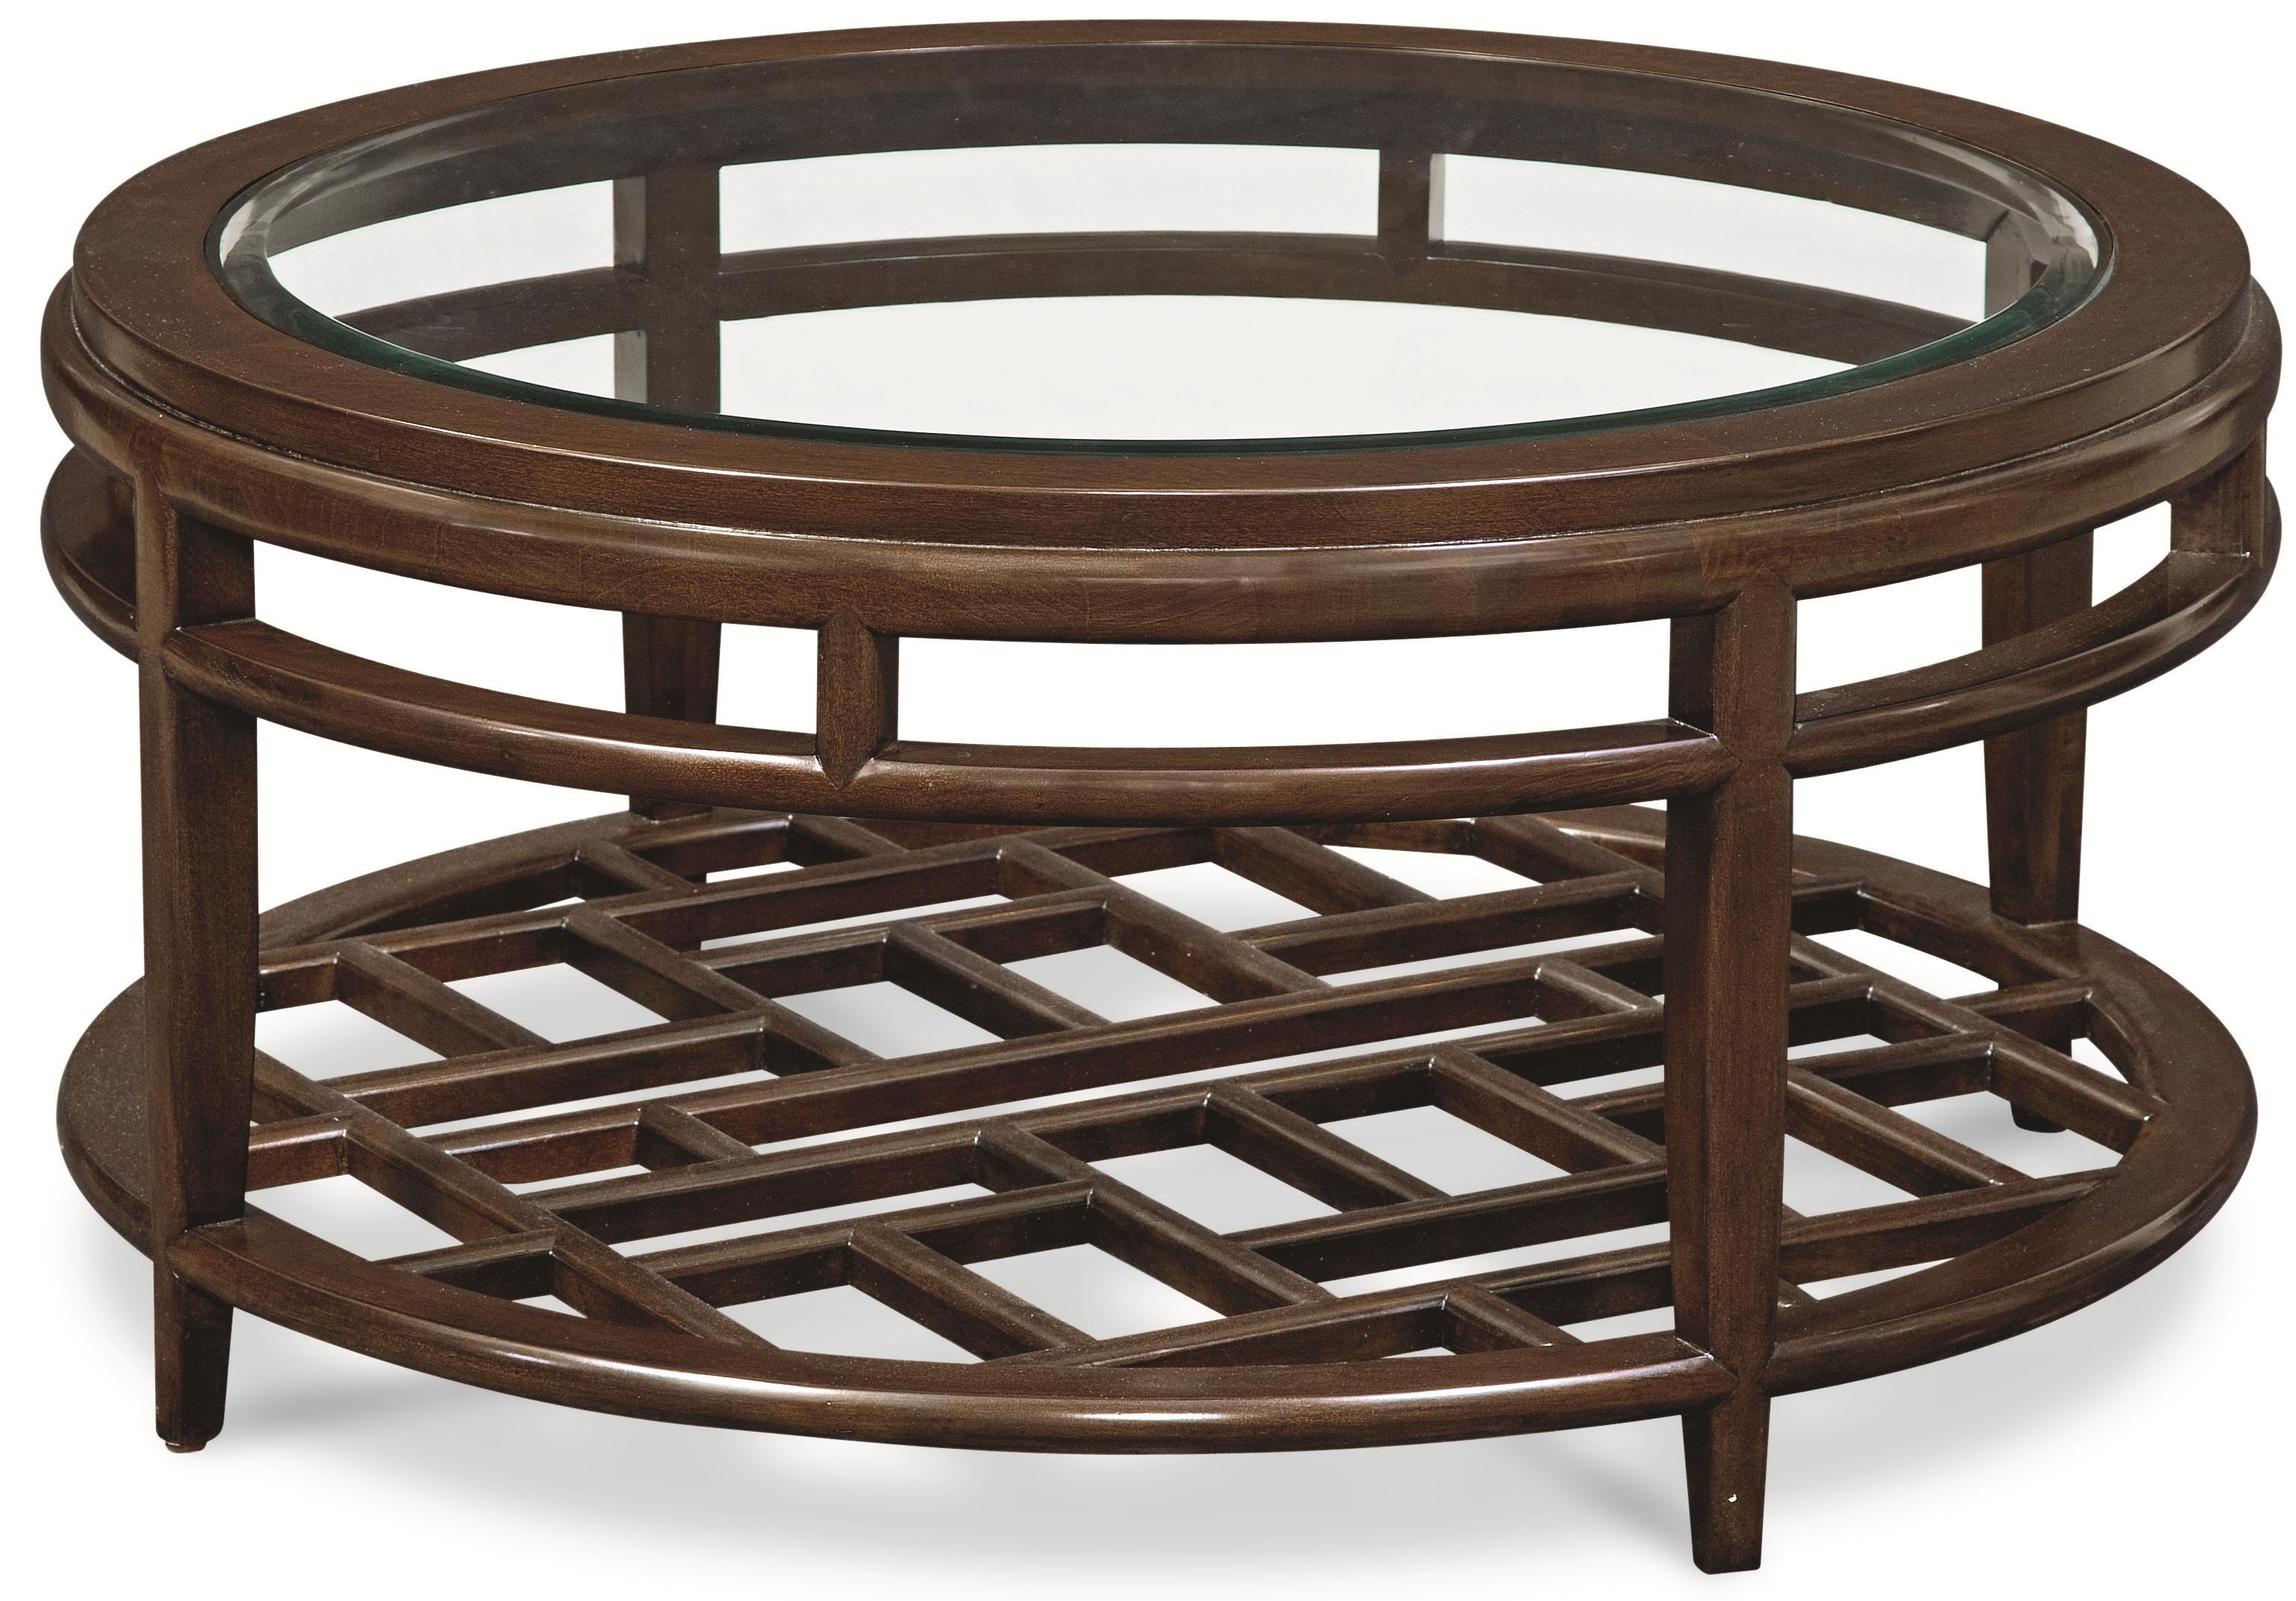 Thomasville lantau 82631 171 round coffee table w wood for Round wood glass coffee table